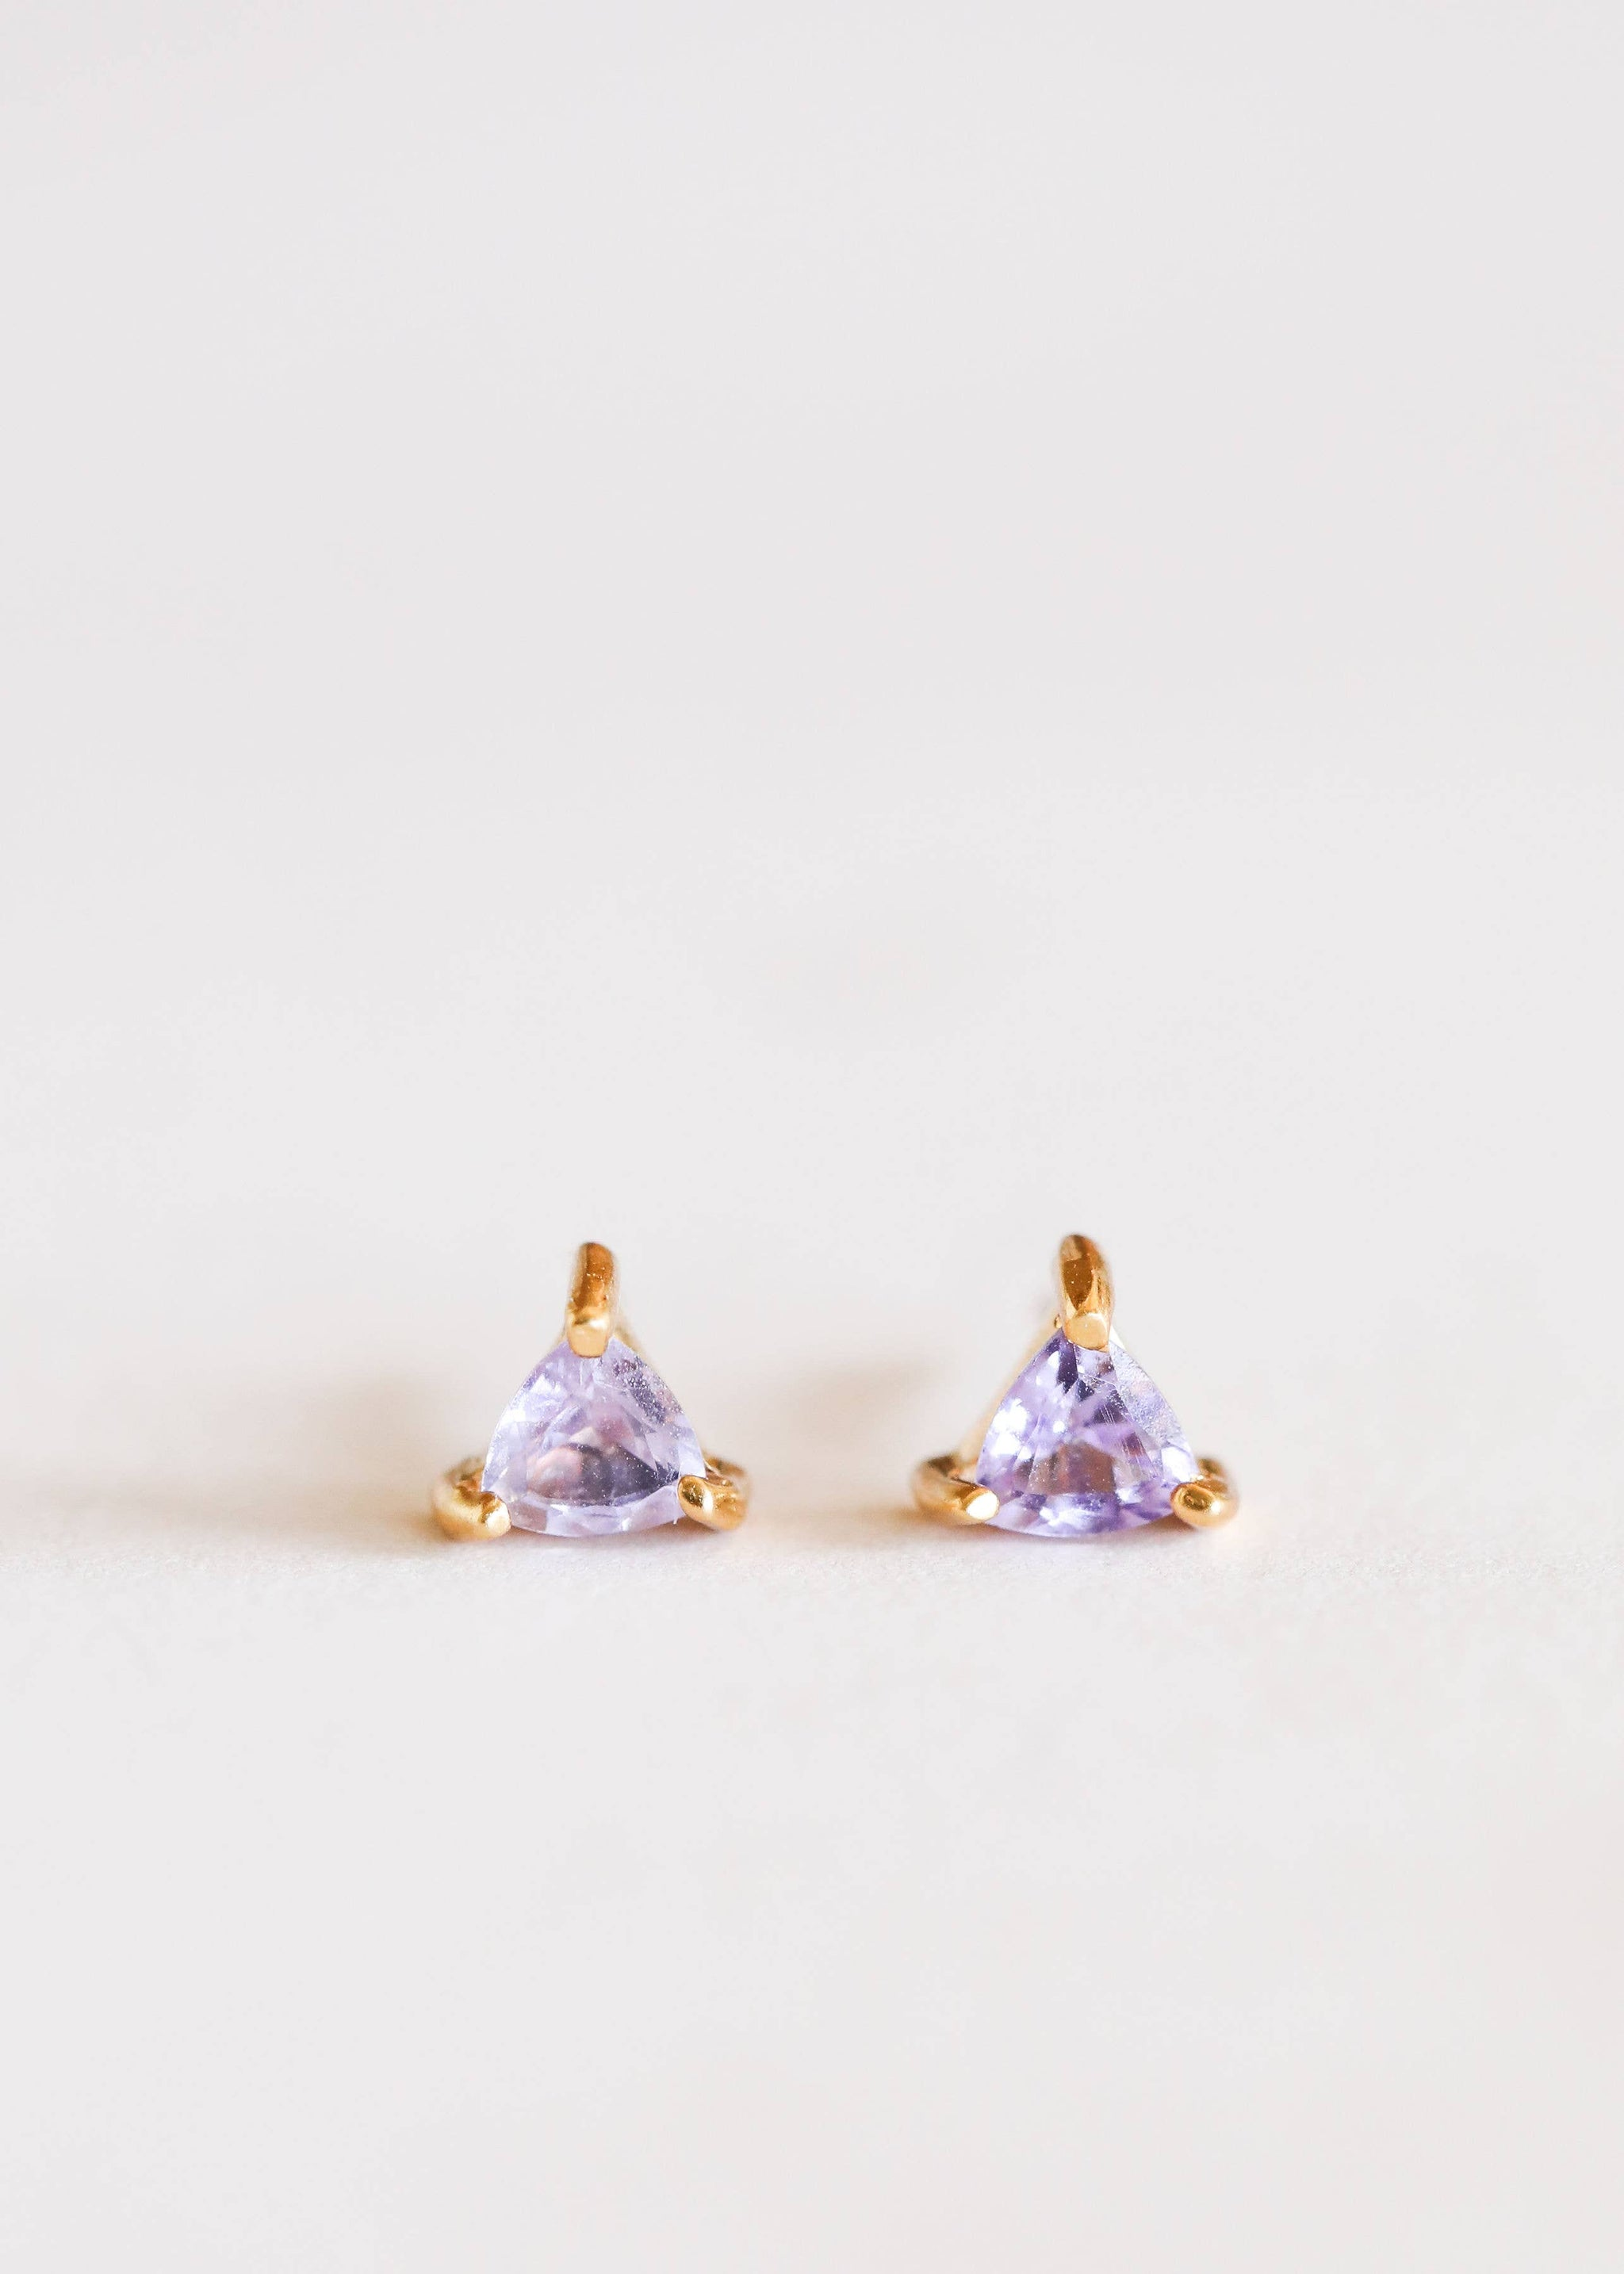 Amethyst Mini Energy Gems - The Lake and Company